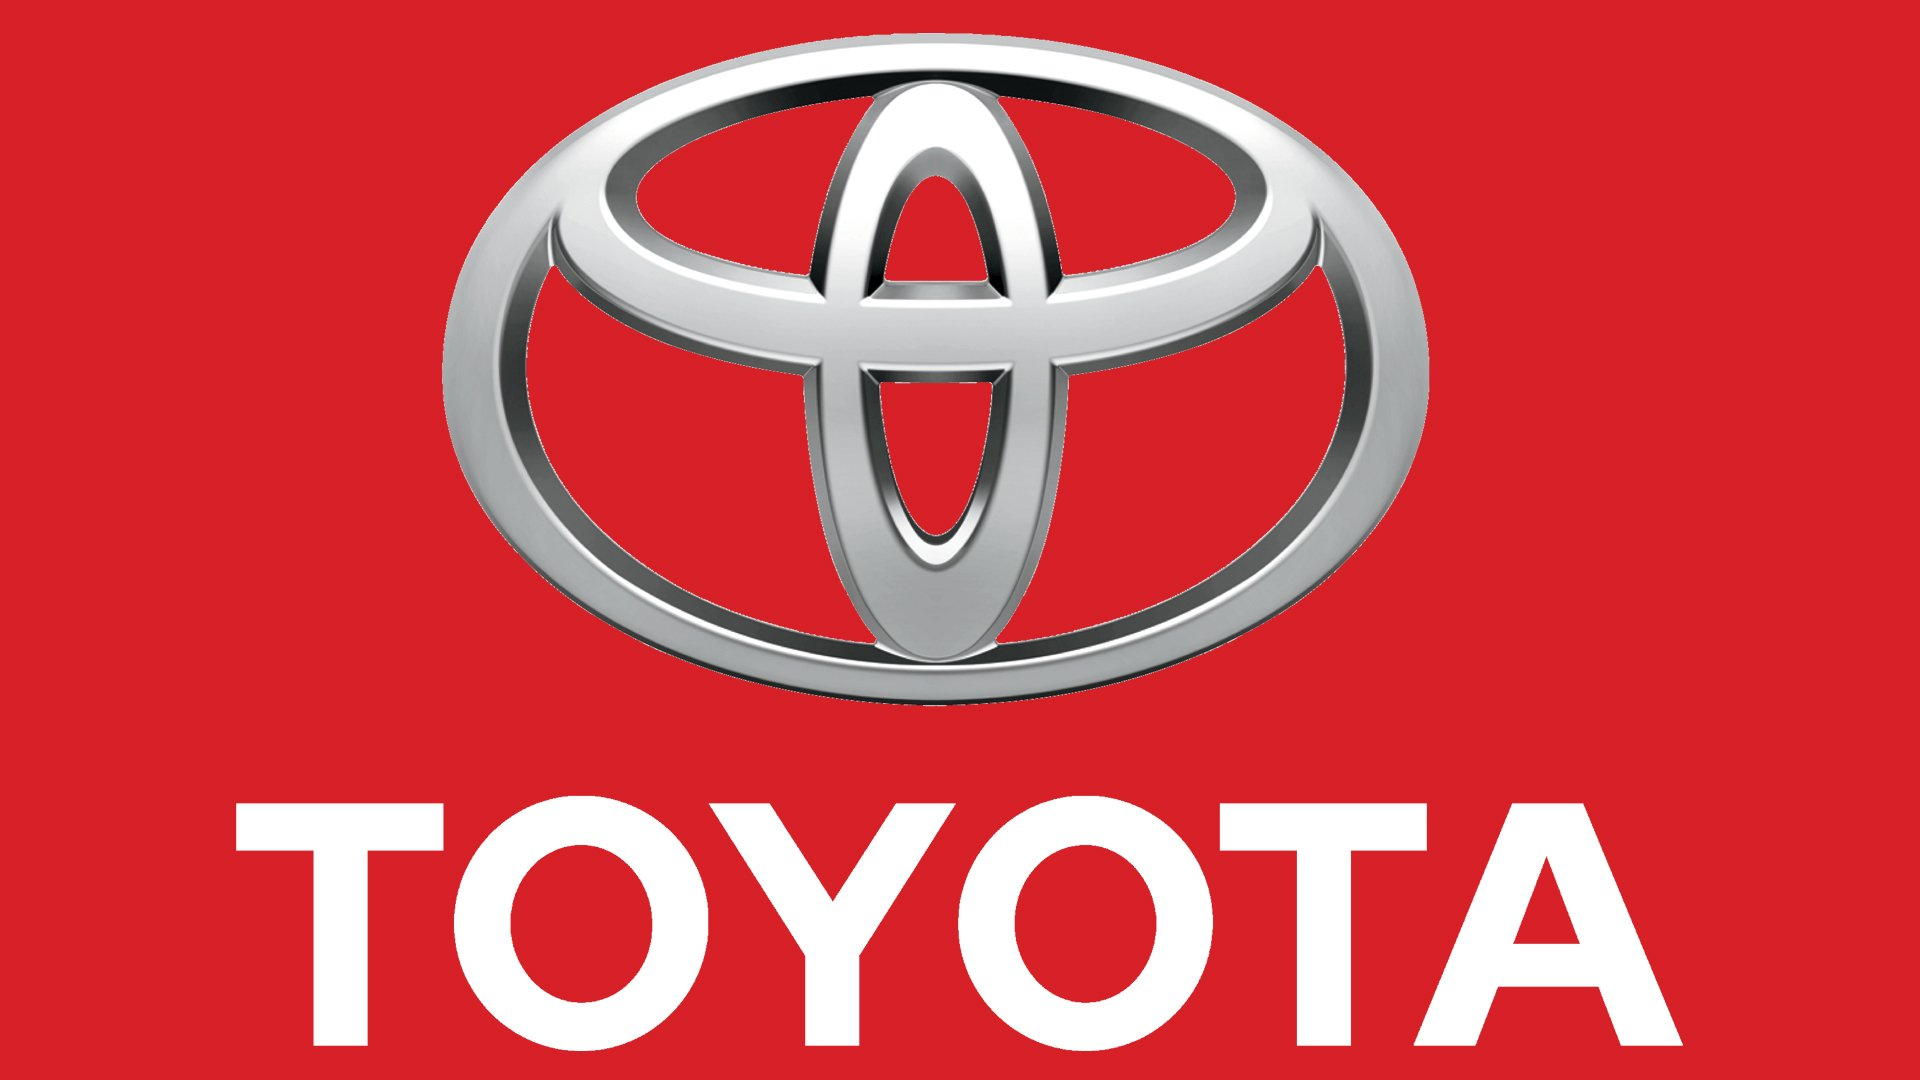 Different Car Logos >> Toyota Logo, Toyota Symbol, Meaning, History and Evolution